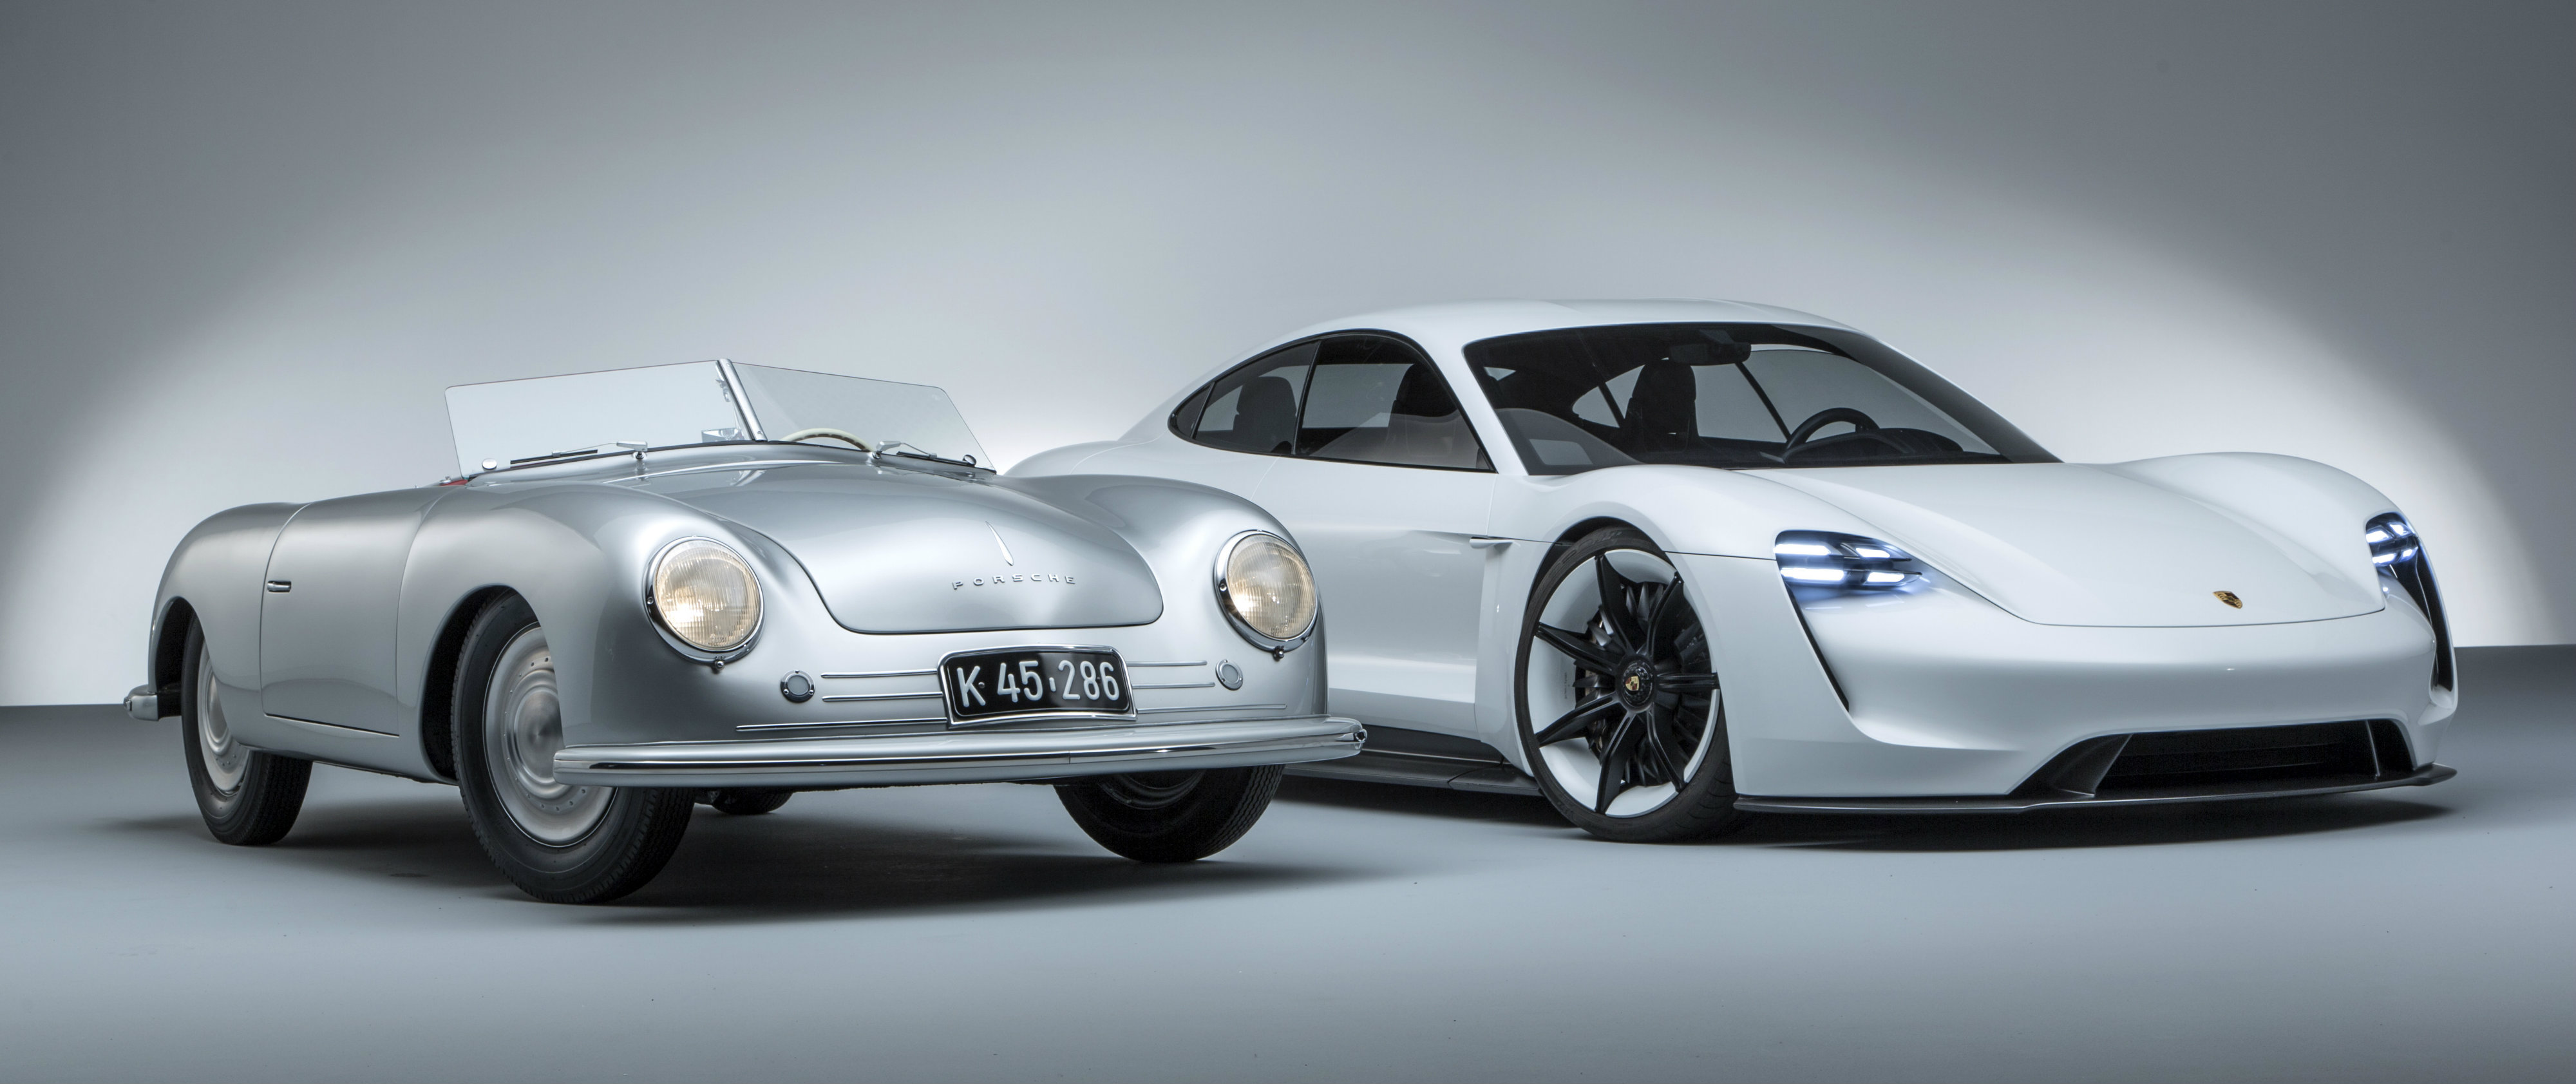 70 Years Of Sports Cars At Porsche Torque